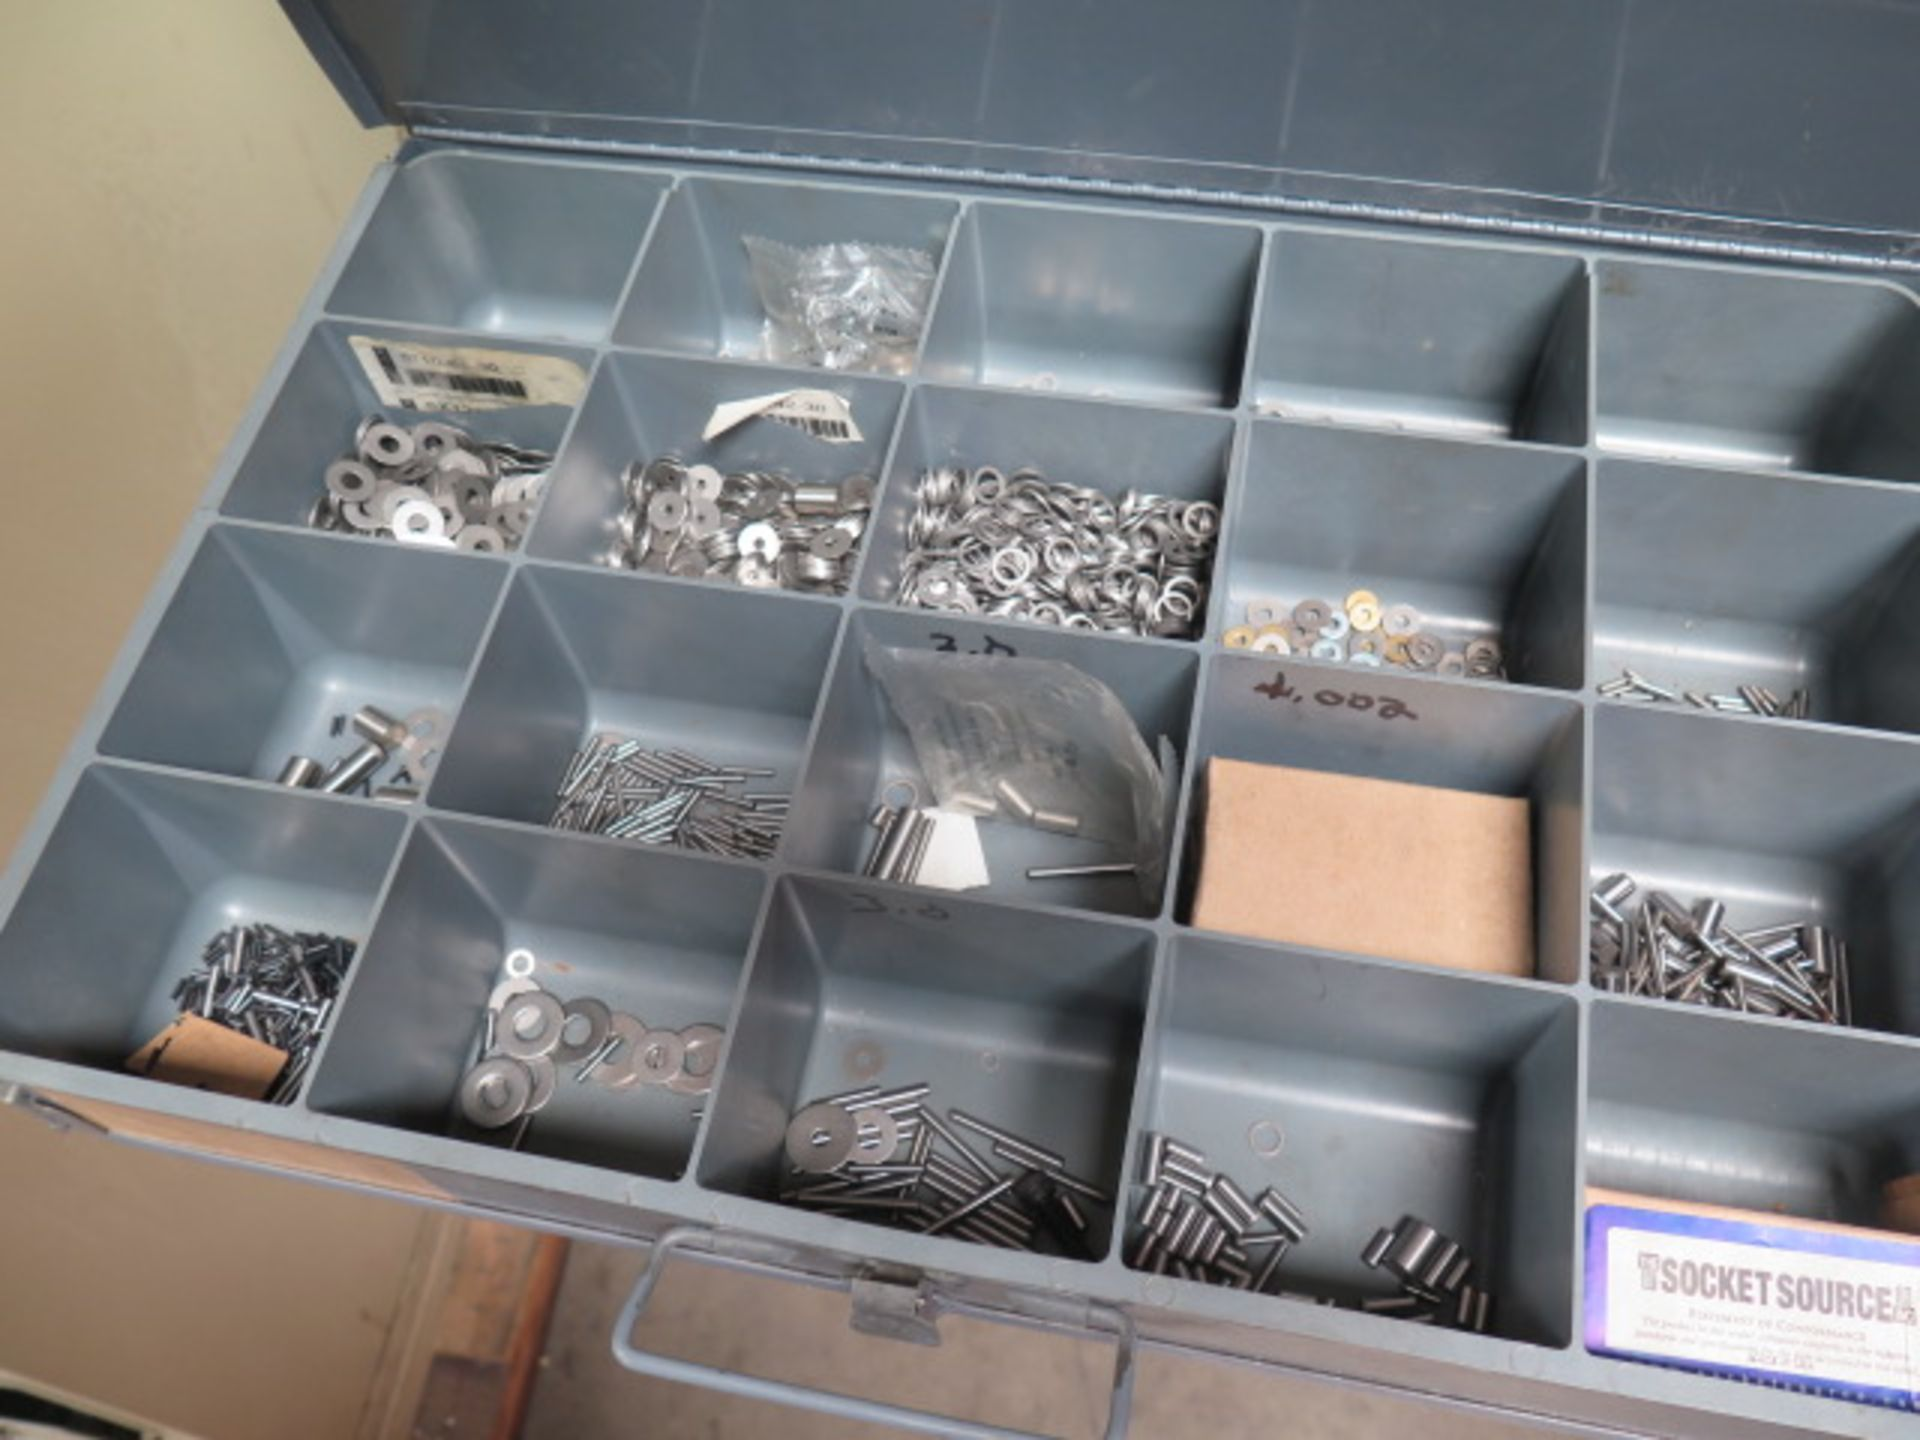 Hardware Cabinets w/ Hardware (SOLD AS-IS - NO WARRANTY) - Image 4 of 6